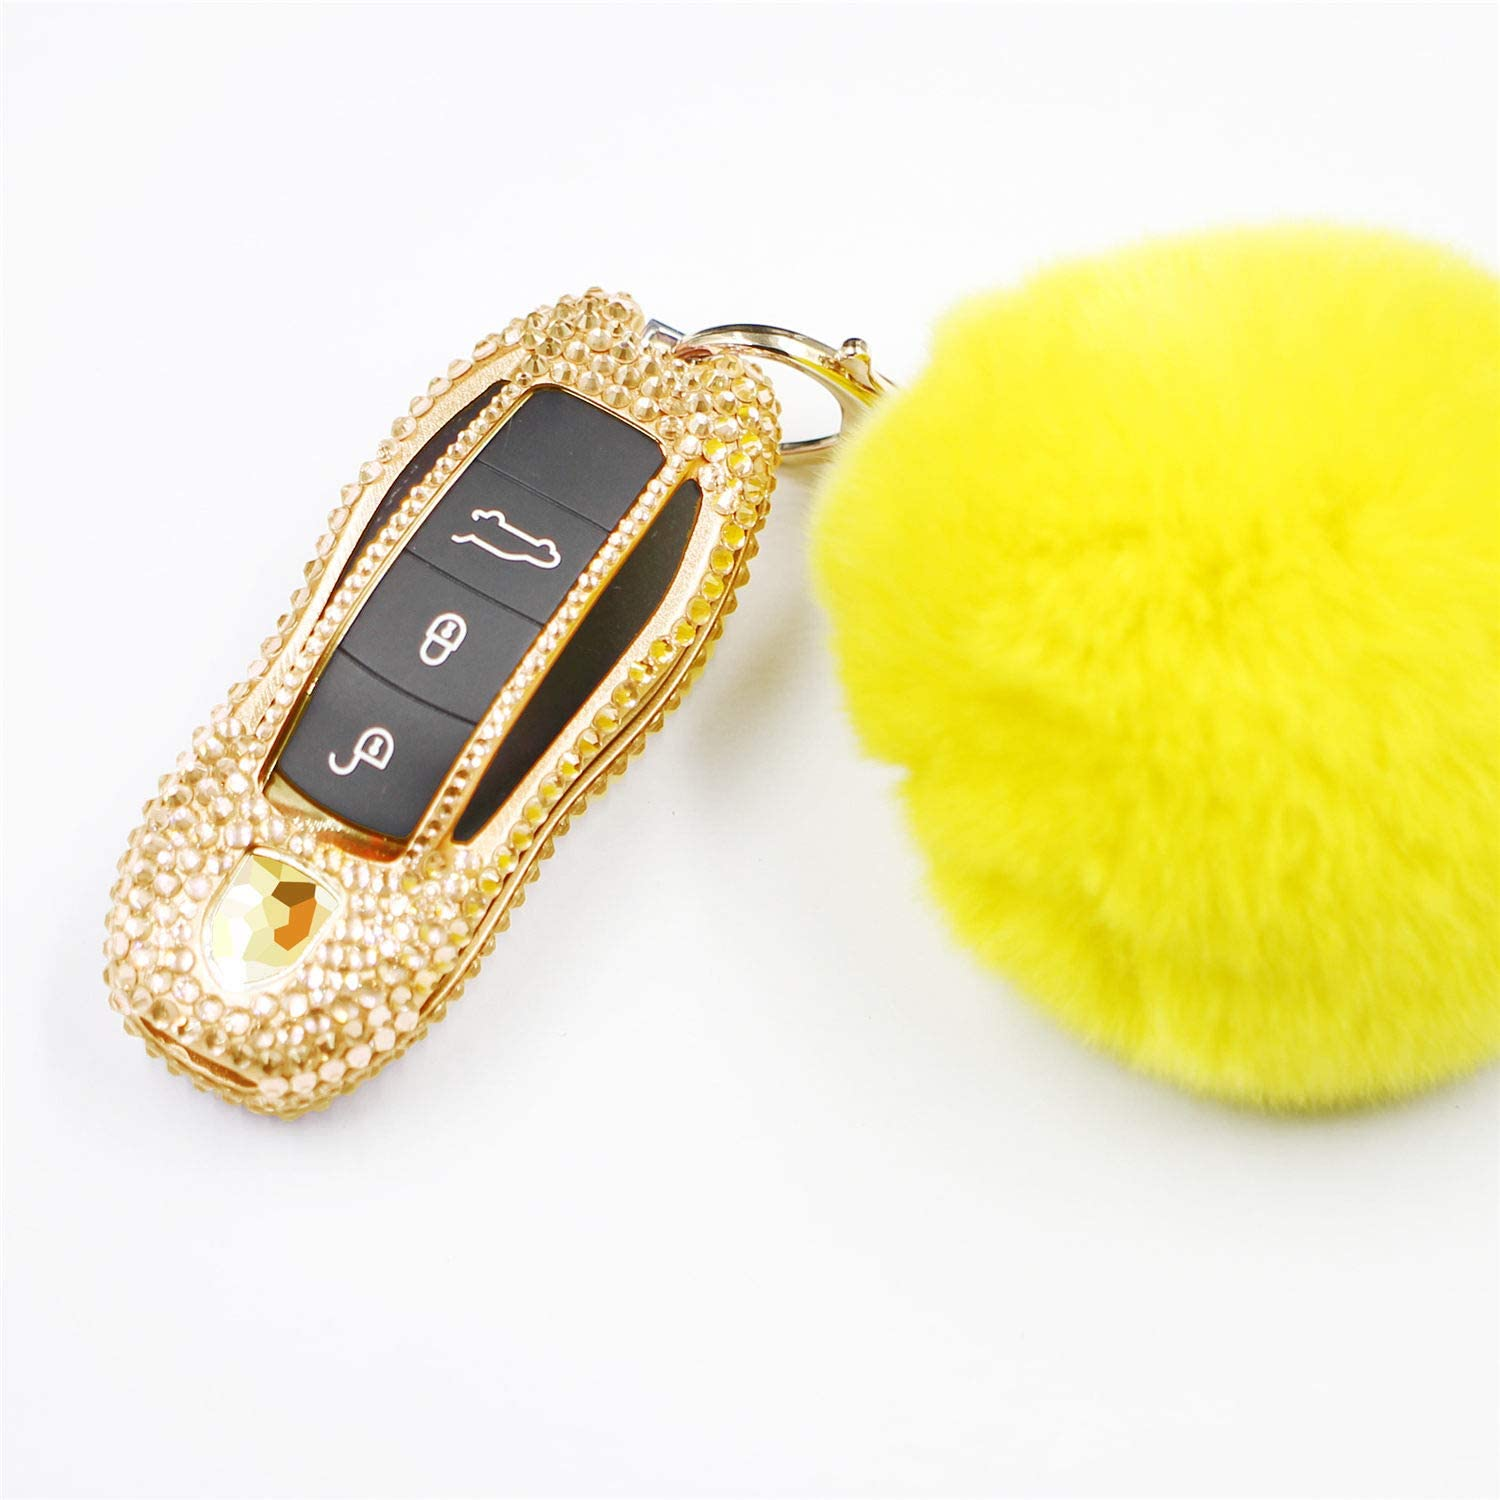 M.JVisun Handmade Car Key Fob Cover for Porsche Remote Fob, Diamond Key Case Cover Fits Porsche 718 911 918 Panamera Macan Cayenne Boxster Cayman, Bling Crystals Aluminum Key Cover Protector - Gold